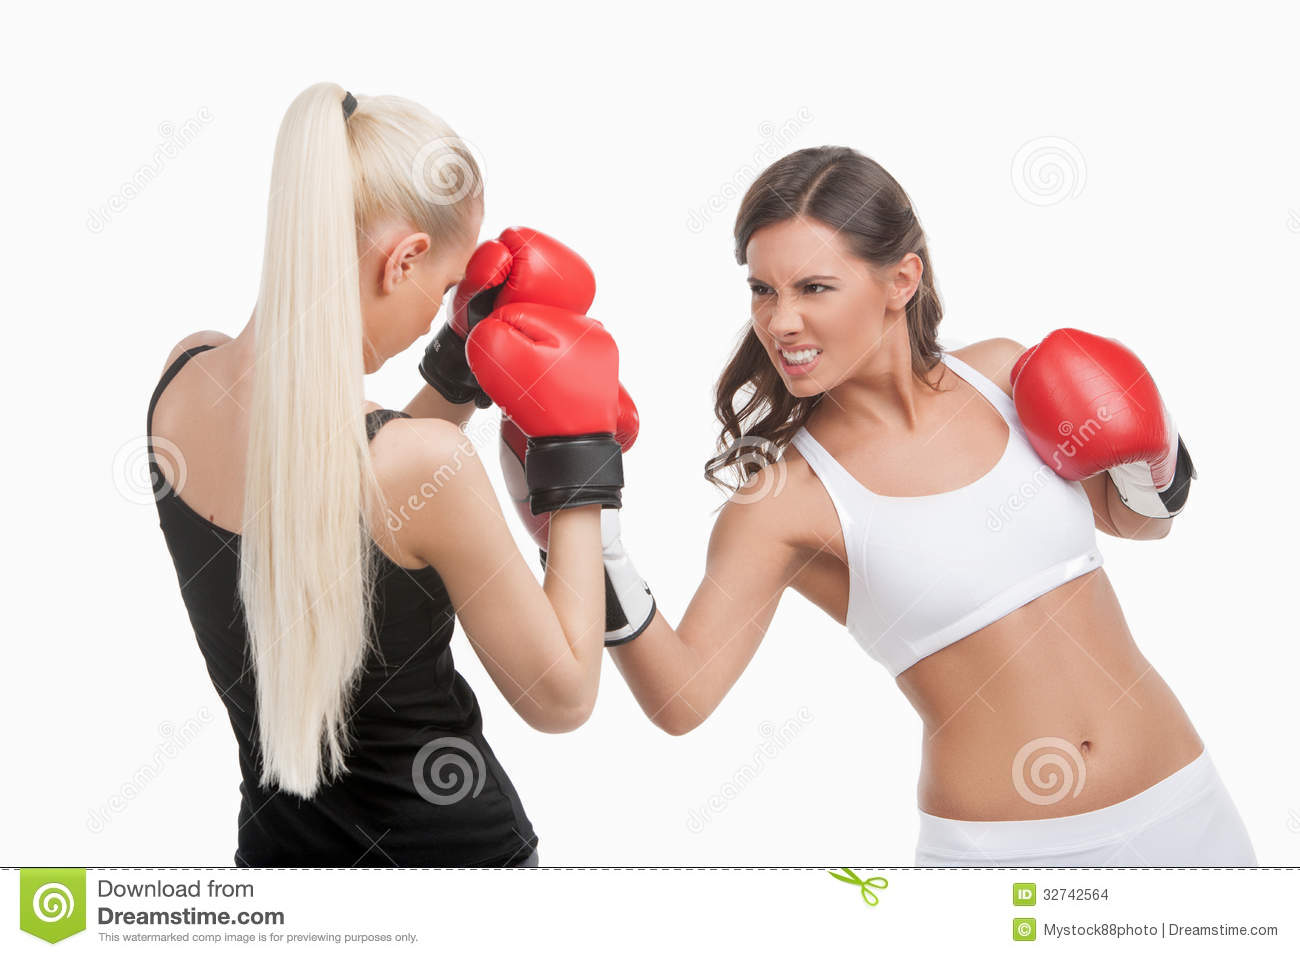 Women boxing.